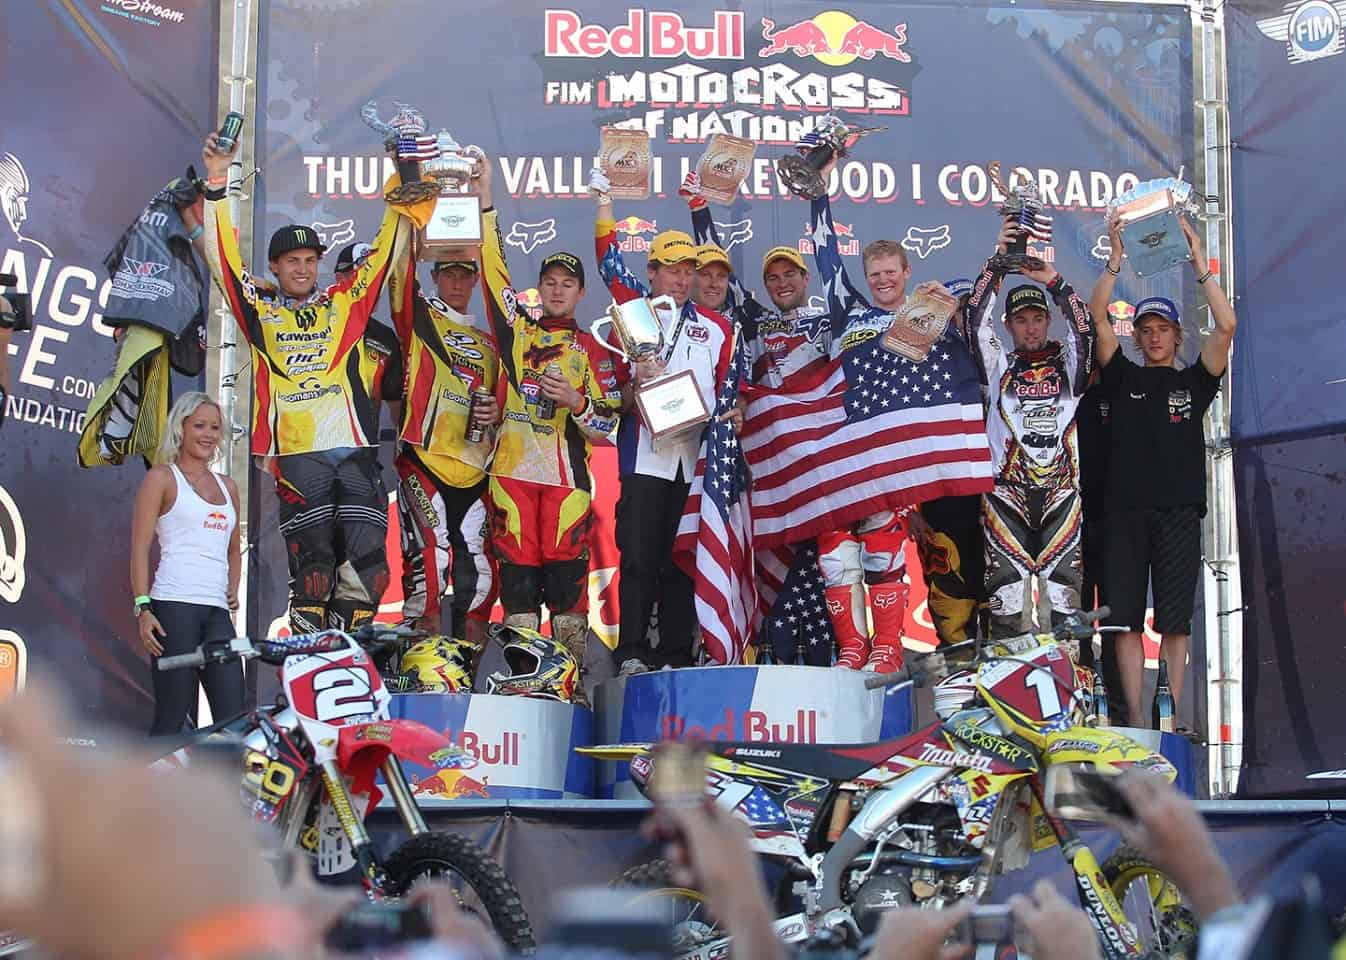 Motocoss of Nations 2010 in Lakewood, Colorado - Siegerehrung